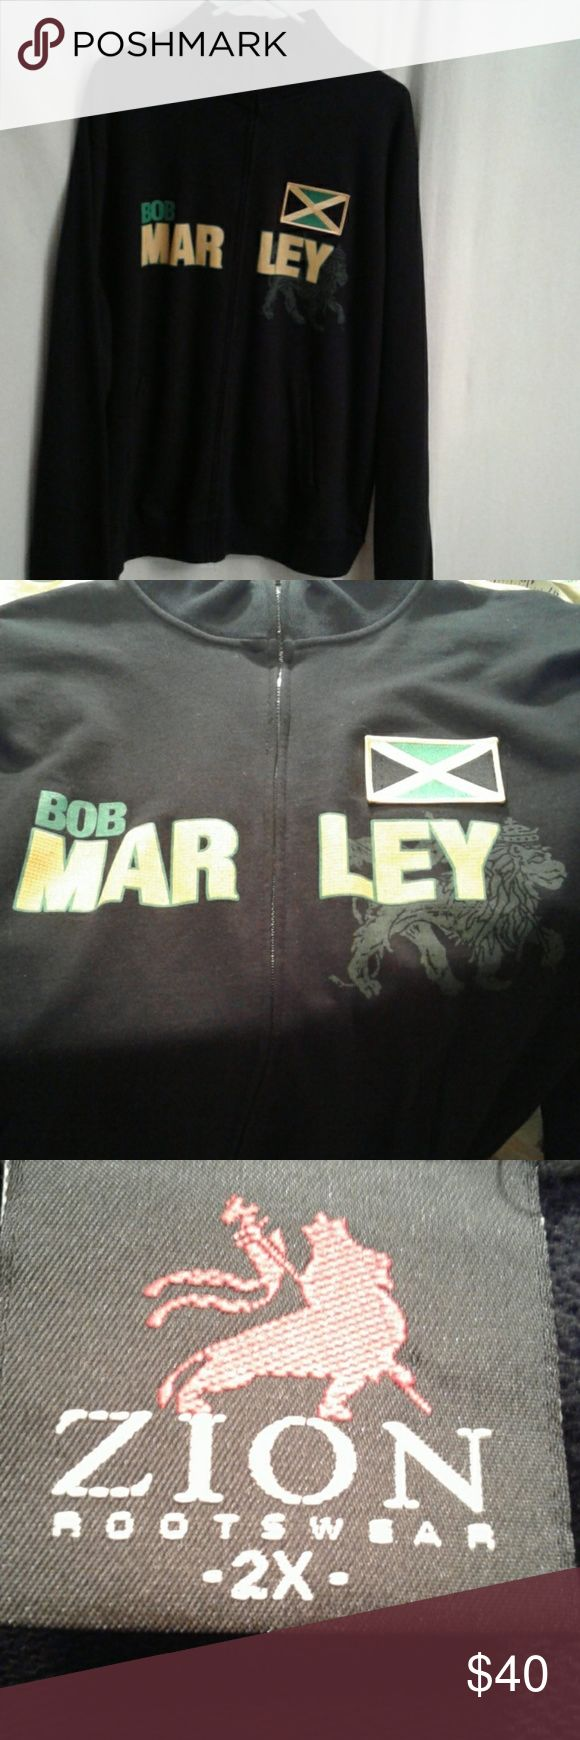 Zion Rootswear Bob Marley full zip sz XXL This is an authentic, full zip, 100% cotton, sweatshirt jacket in EUC. It is decorated with a patch of the Jamaican flag, a King of Judah symbol,  and Bob Marley in green and gold. It has 2 slash front pockets and a high necked collar. Zion Rootswear Jackets & Coats Lightweight & Shirt Jackets